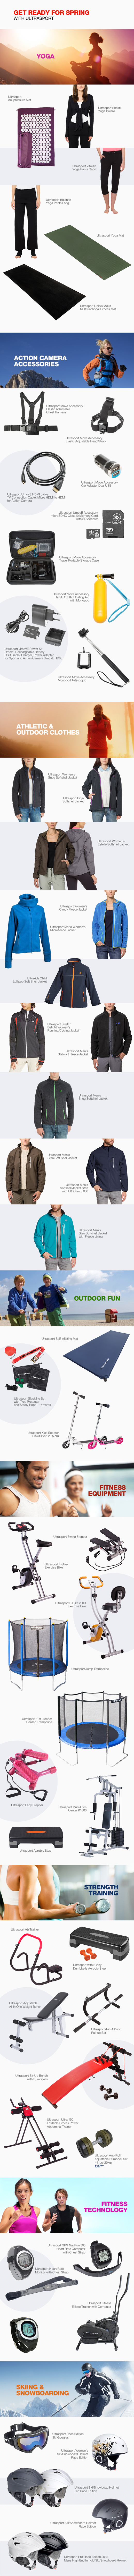 Get ready for Spring with Ultrasport